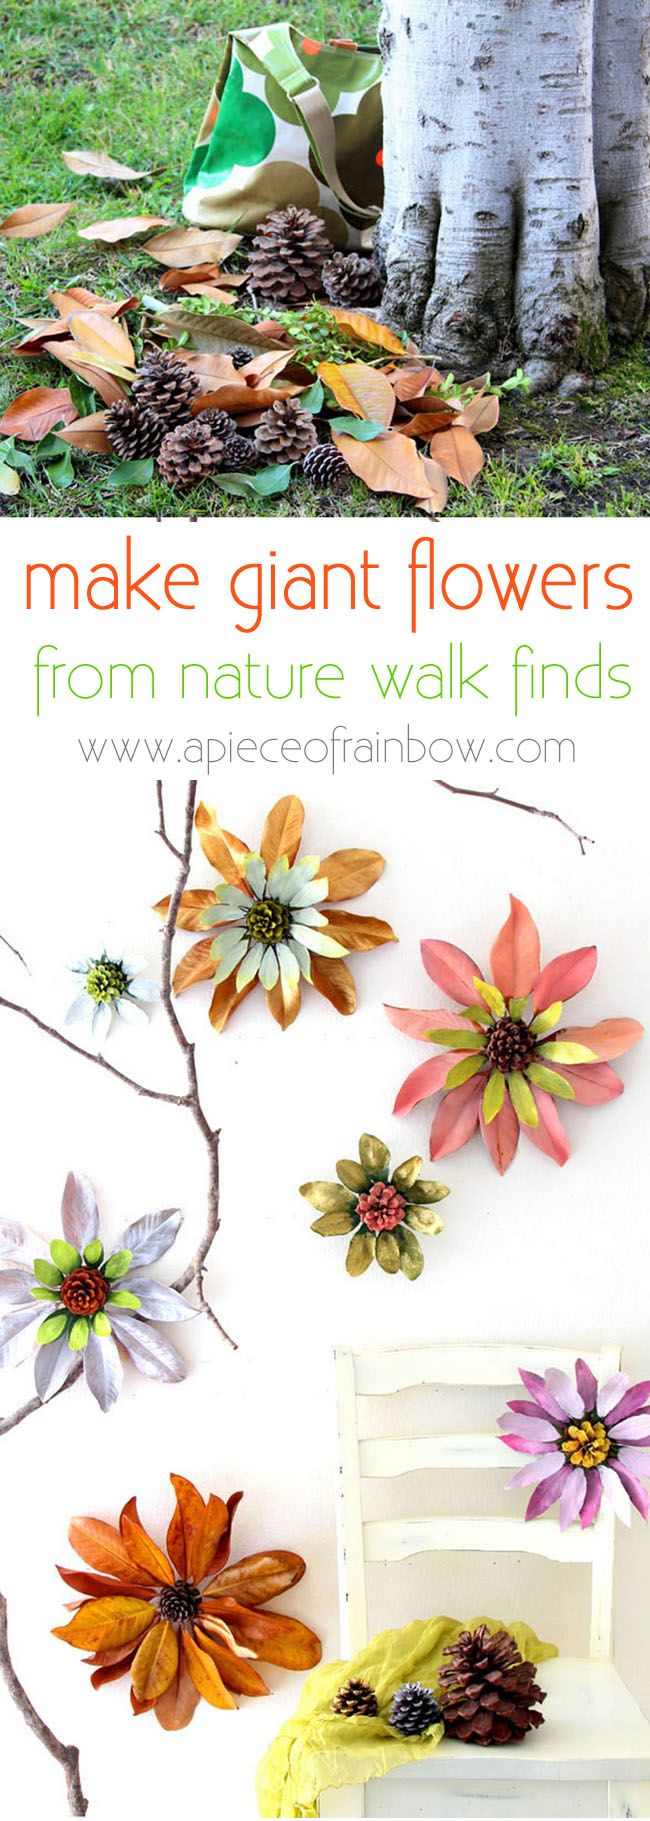 How to make flowers from nature walk findings such as pine cones and leaves. These giant blossoms make such dramatic, beautiful and free home decorations! - A Piece Of Rainbow